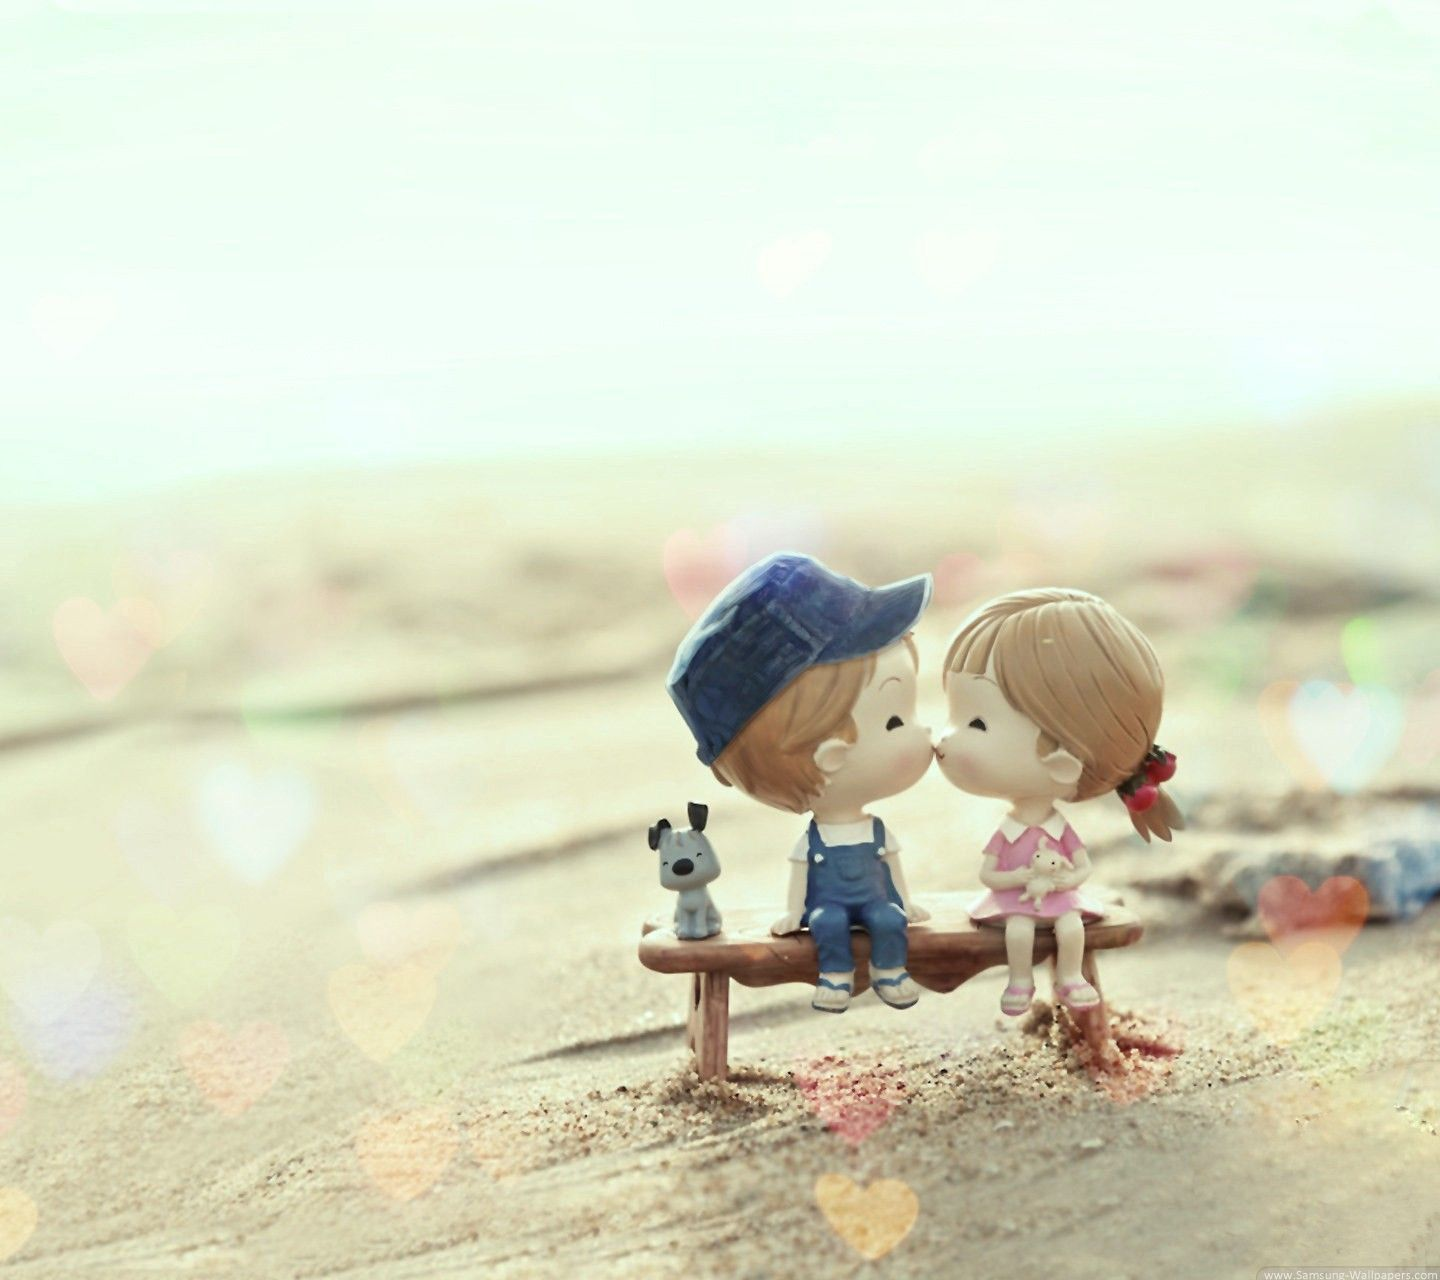 Download This Awesome Wallpaper Wallpaper Cave Cute Couple